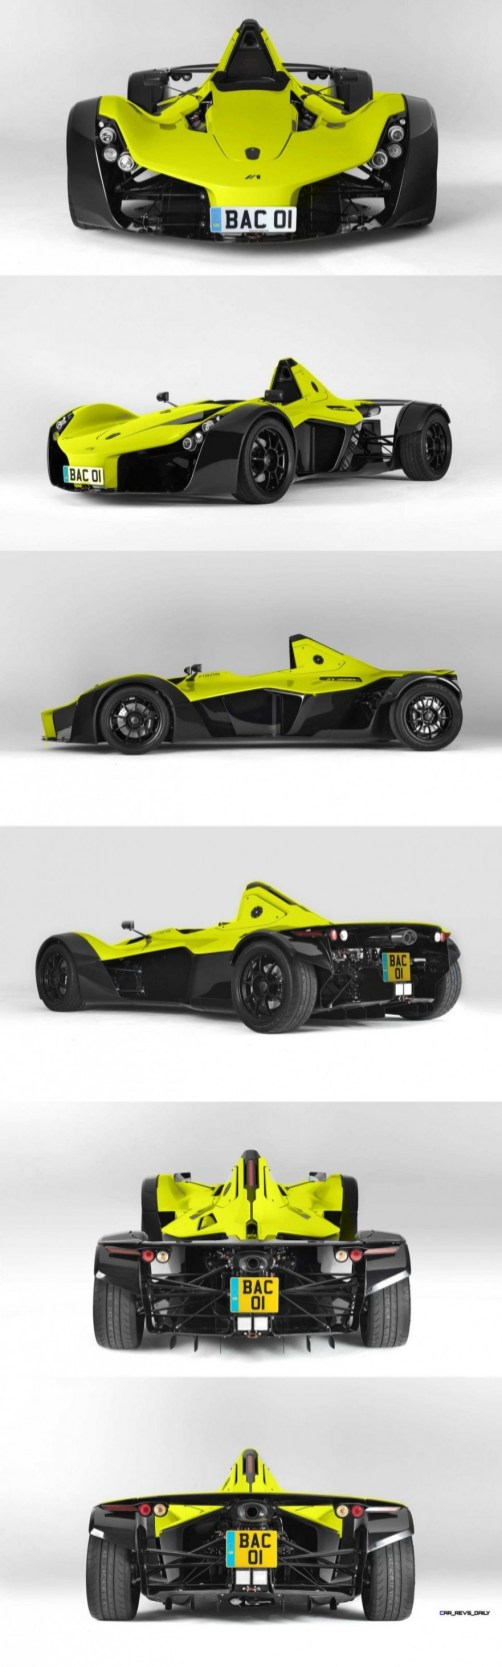 2016 BAC Mono - Digital Color Visualizer + TallPapers 2